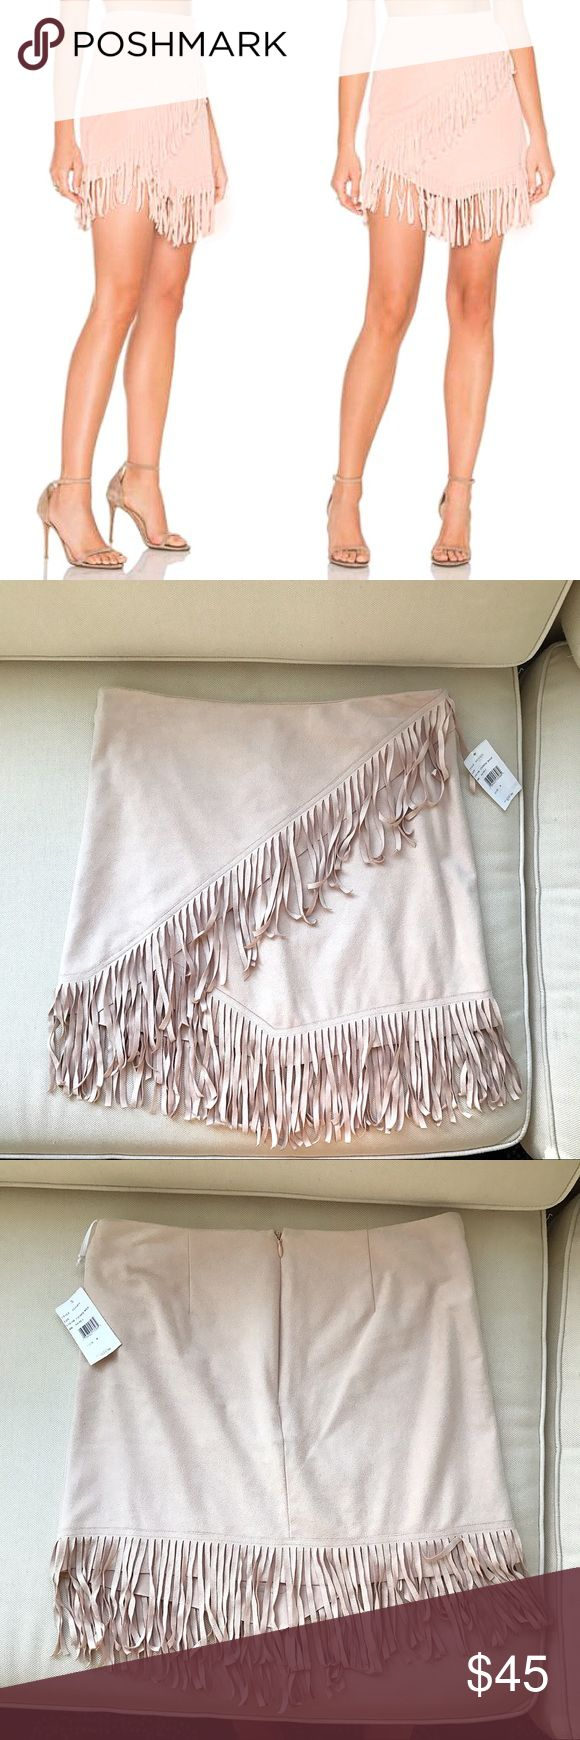 Fringe, Suade Cream Pink Mini Skirt 💃🏼 Brand new with tags. Measures approximately 15 inches in the back, 16 inches in the front (both measures are where the material ends and not where are the fringe ends), 15 1/2 inches waste laying flat. The material stretches a very well and it's super soft so there is lots of extra room all around. The color is like a cream/camel; best color of the skirt shows photo with the price tag. 1. State Skirts Mini